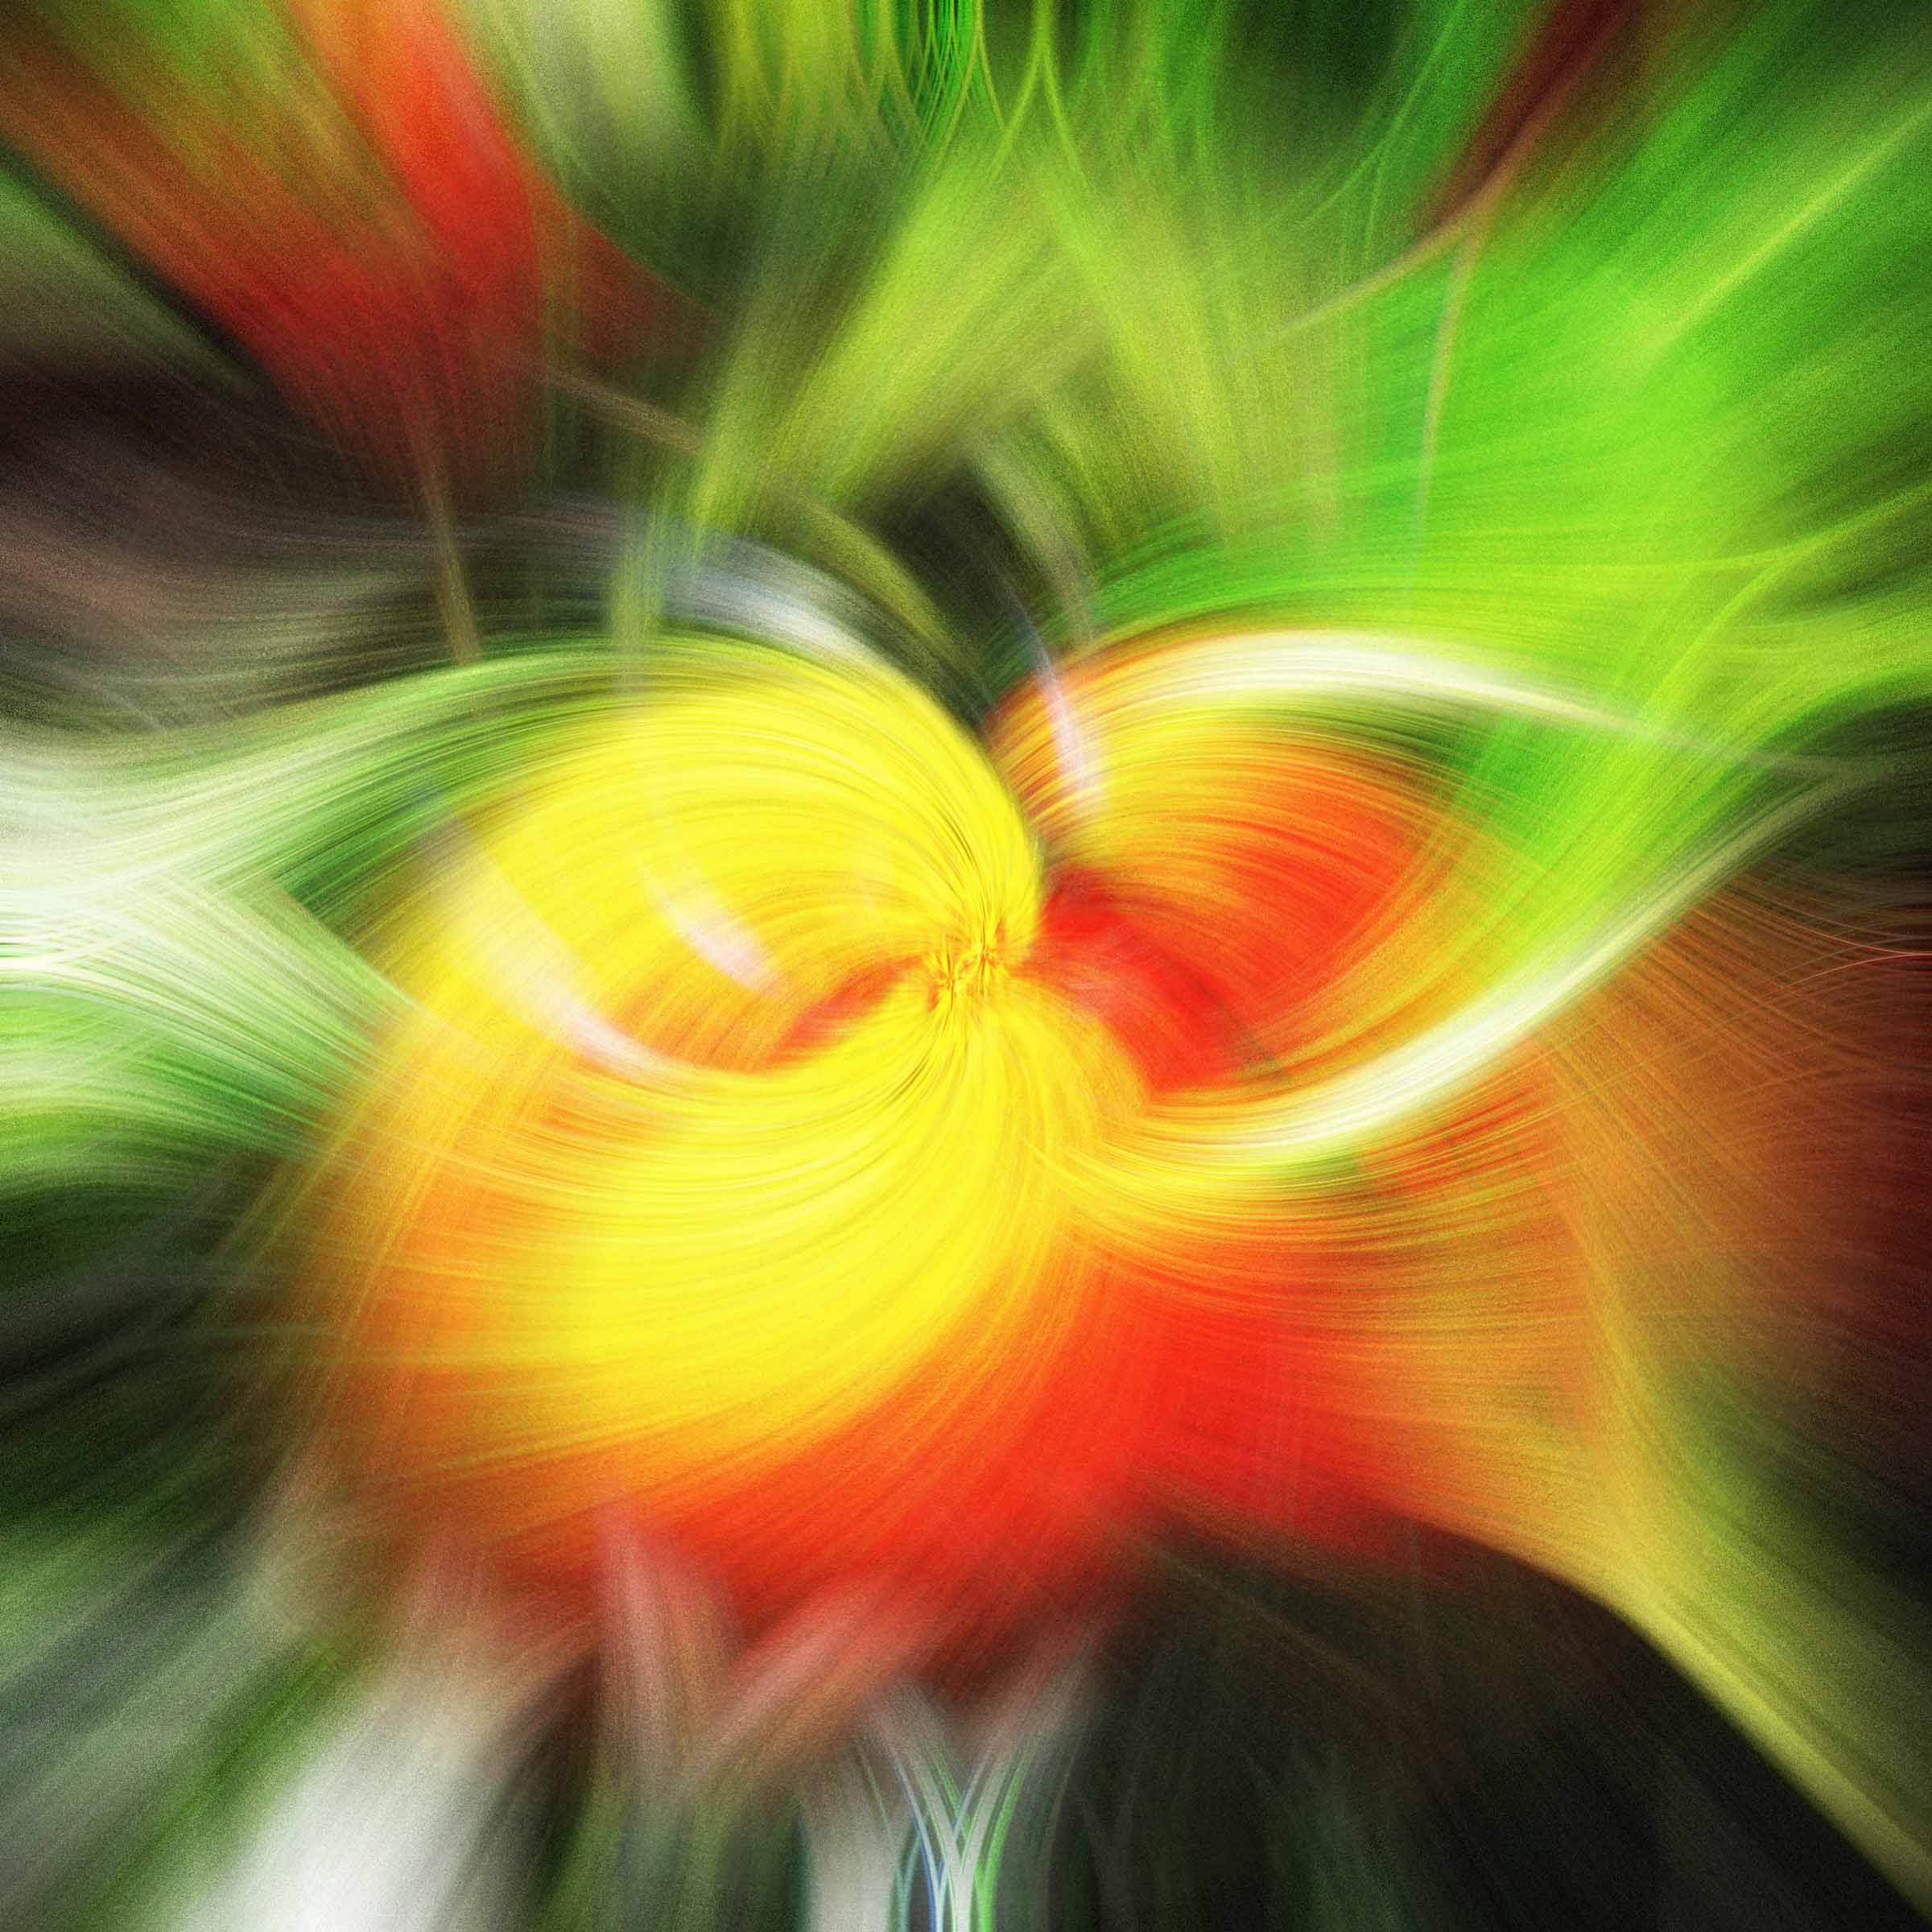 Green and yellow twirl effect image